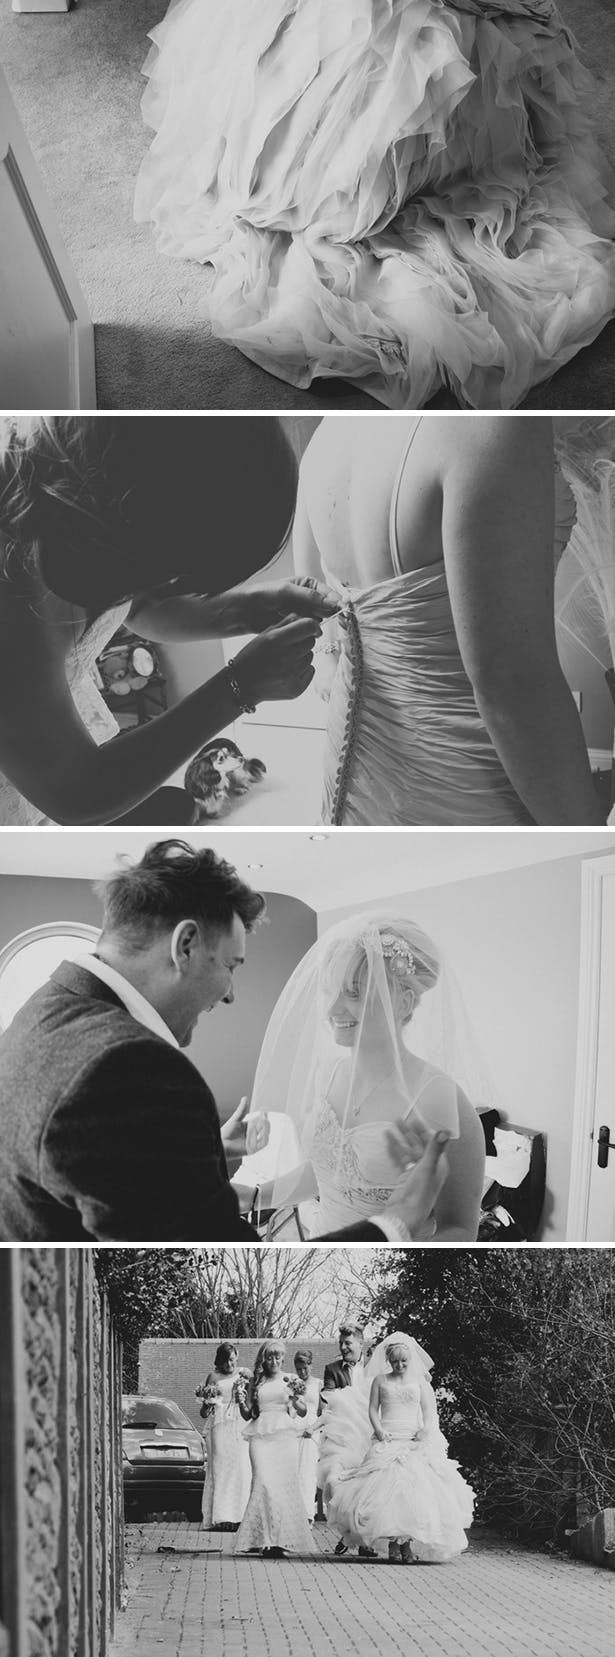 The bride getting ready for her ig day | Ian Stuart ruffed wedding dress |Georgina and Edward's real wedding | Confetti.co.uk